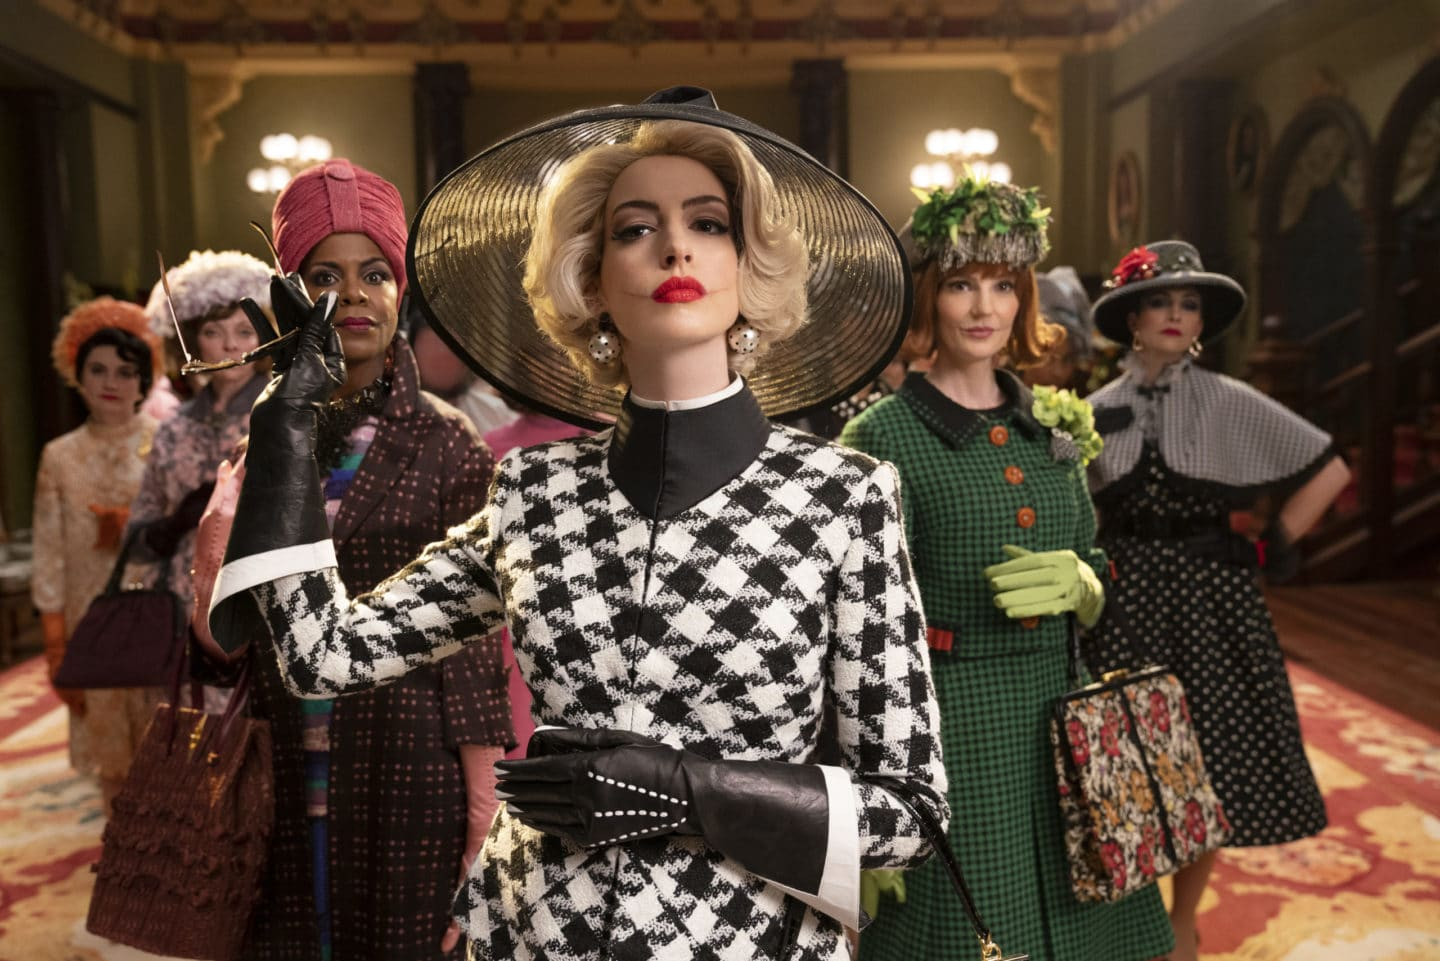 Hexen Hexen: EUGENIA CARUSO as Consuella, PENNY LISLE as Witch, JOSETTE SIMON as Zelda, ANNE HATHAWAY as Grand High Witch, ORLA O'ROURKE as Saoirse and ANA-MARIA MASKELL as Esmeralda  Photo Credit: Daniel Smith  © 2020 Warner Bros. Entertainment Inc.